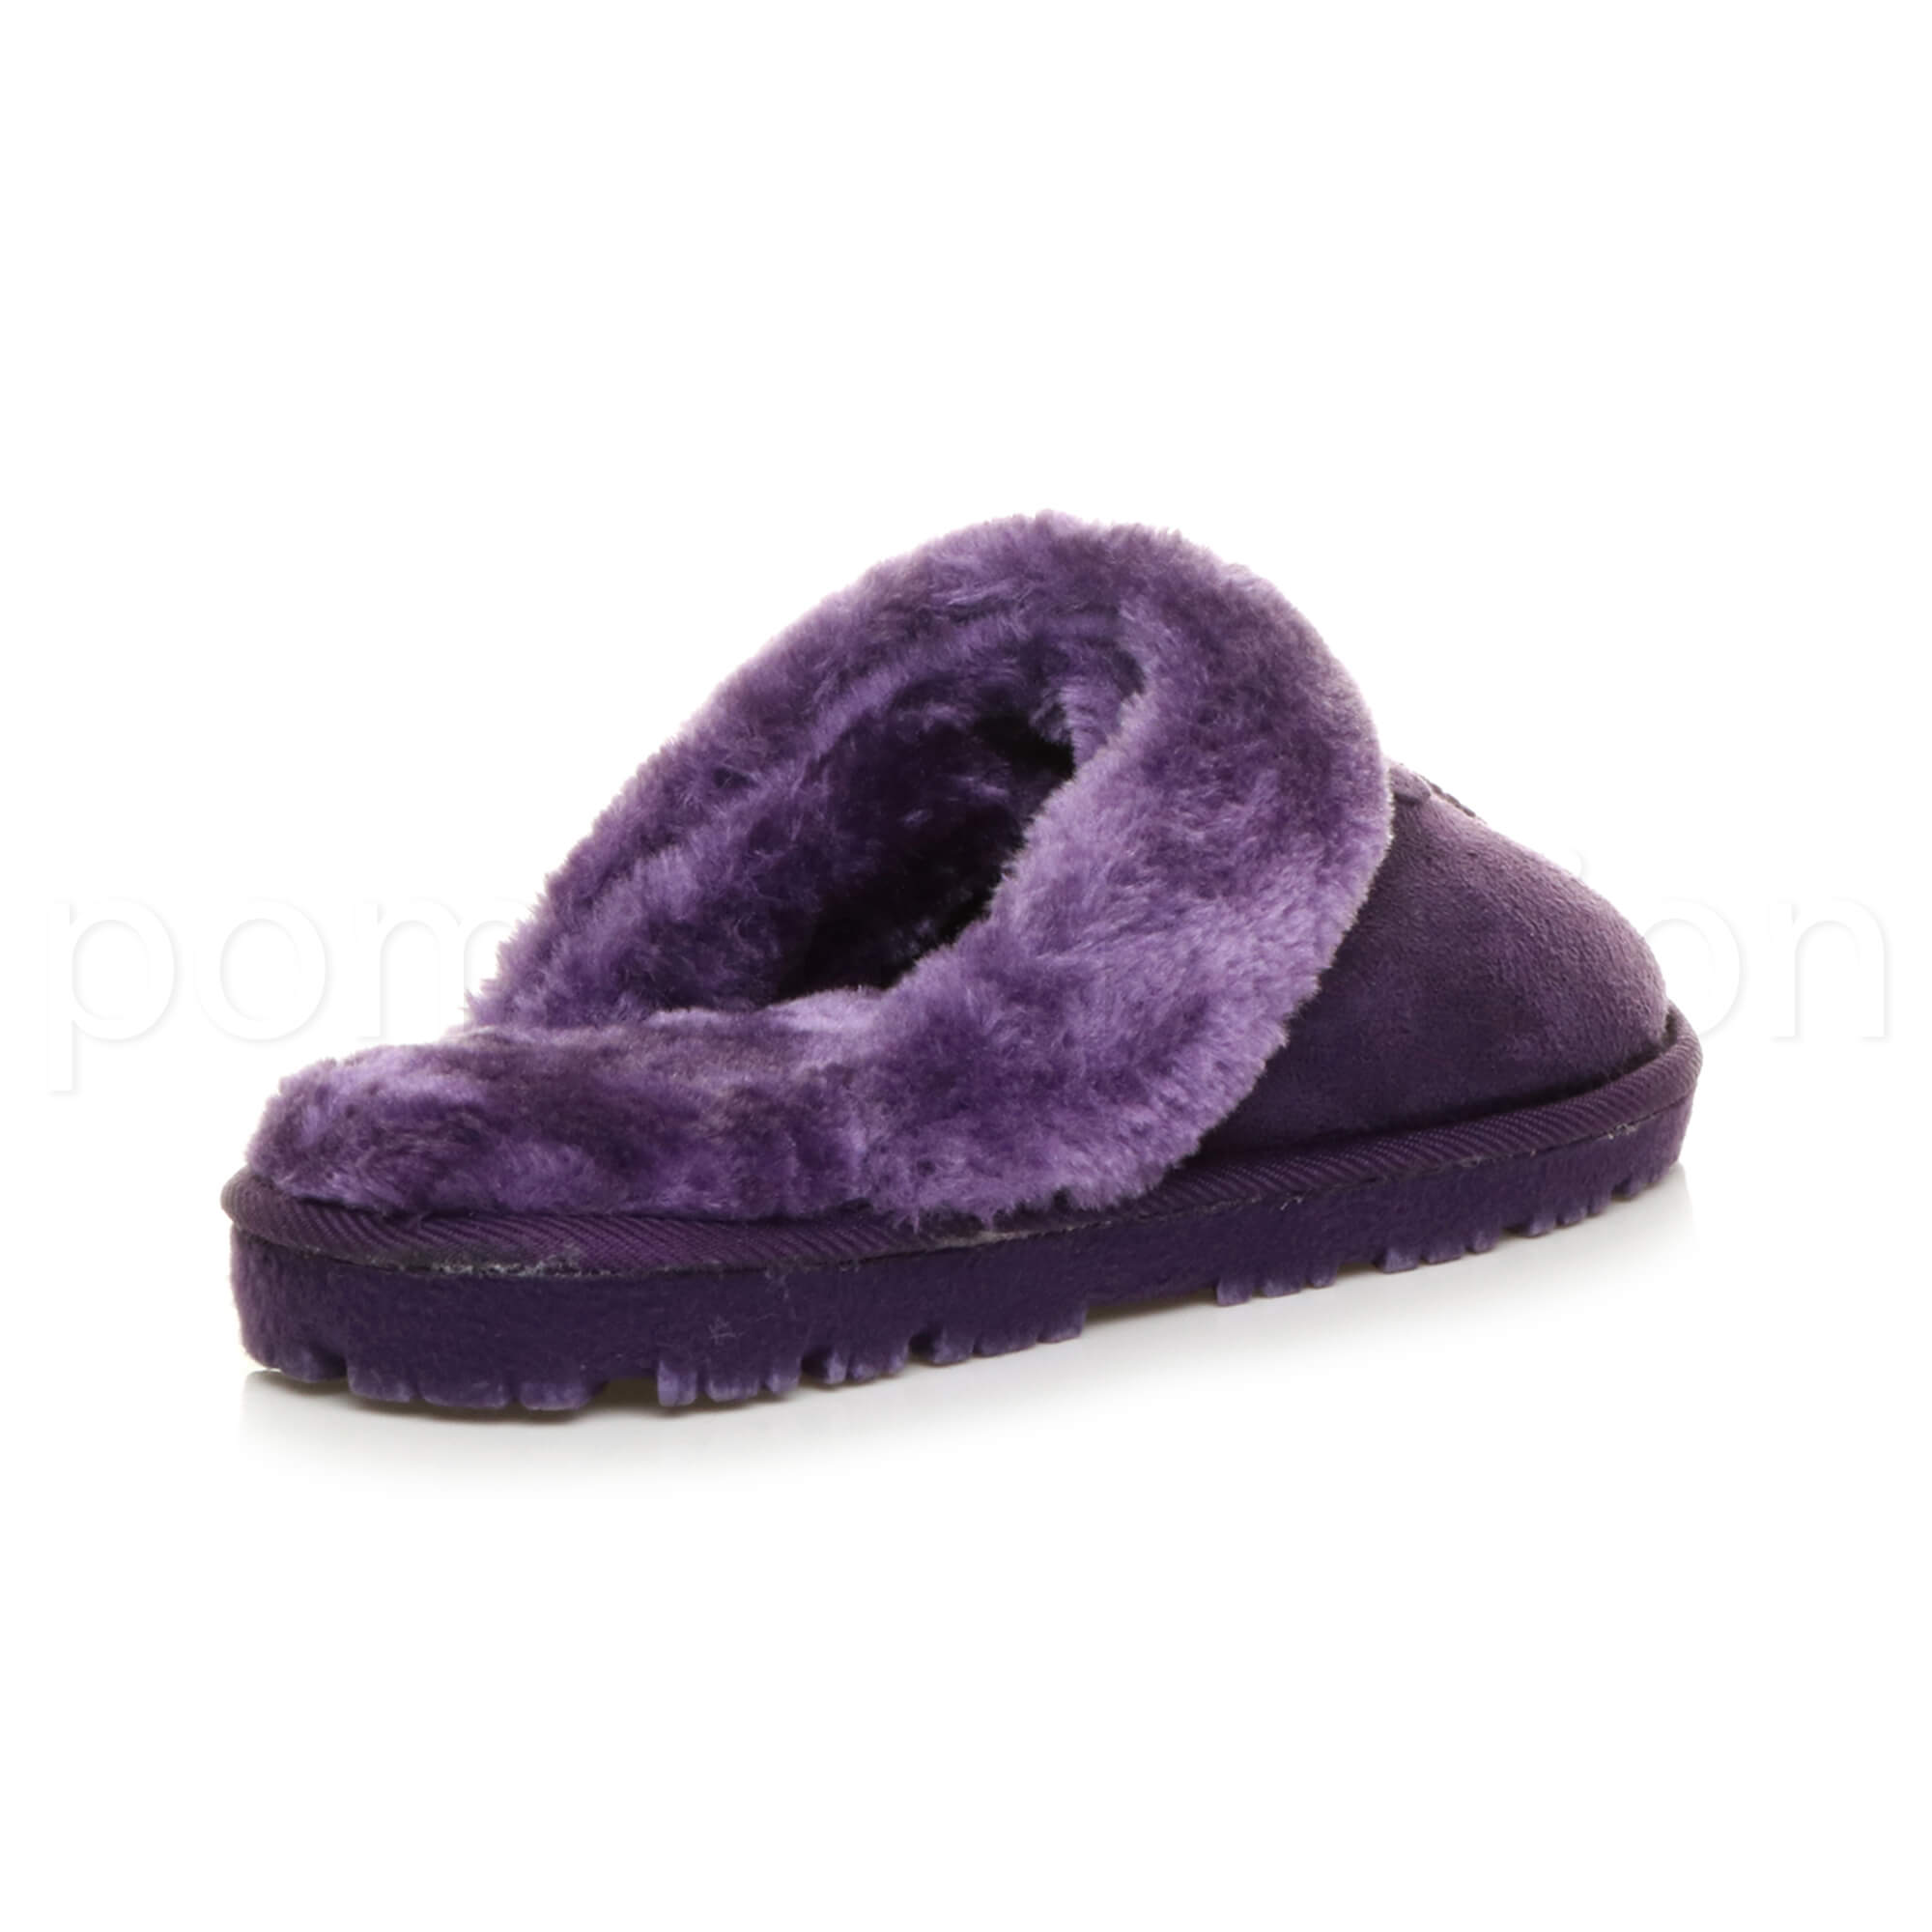 WOMENS-LADIES-FLAT-FUR-LINED-COMFORTABLE-WINTER-MULES-SLIPPERS-HOUSE-SHOES-SIZE thumbnail 89